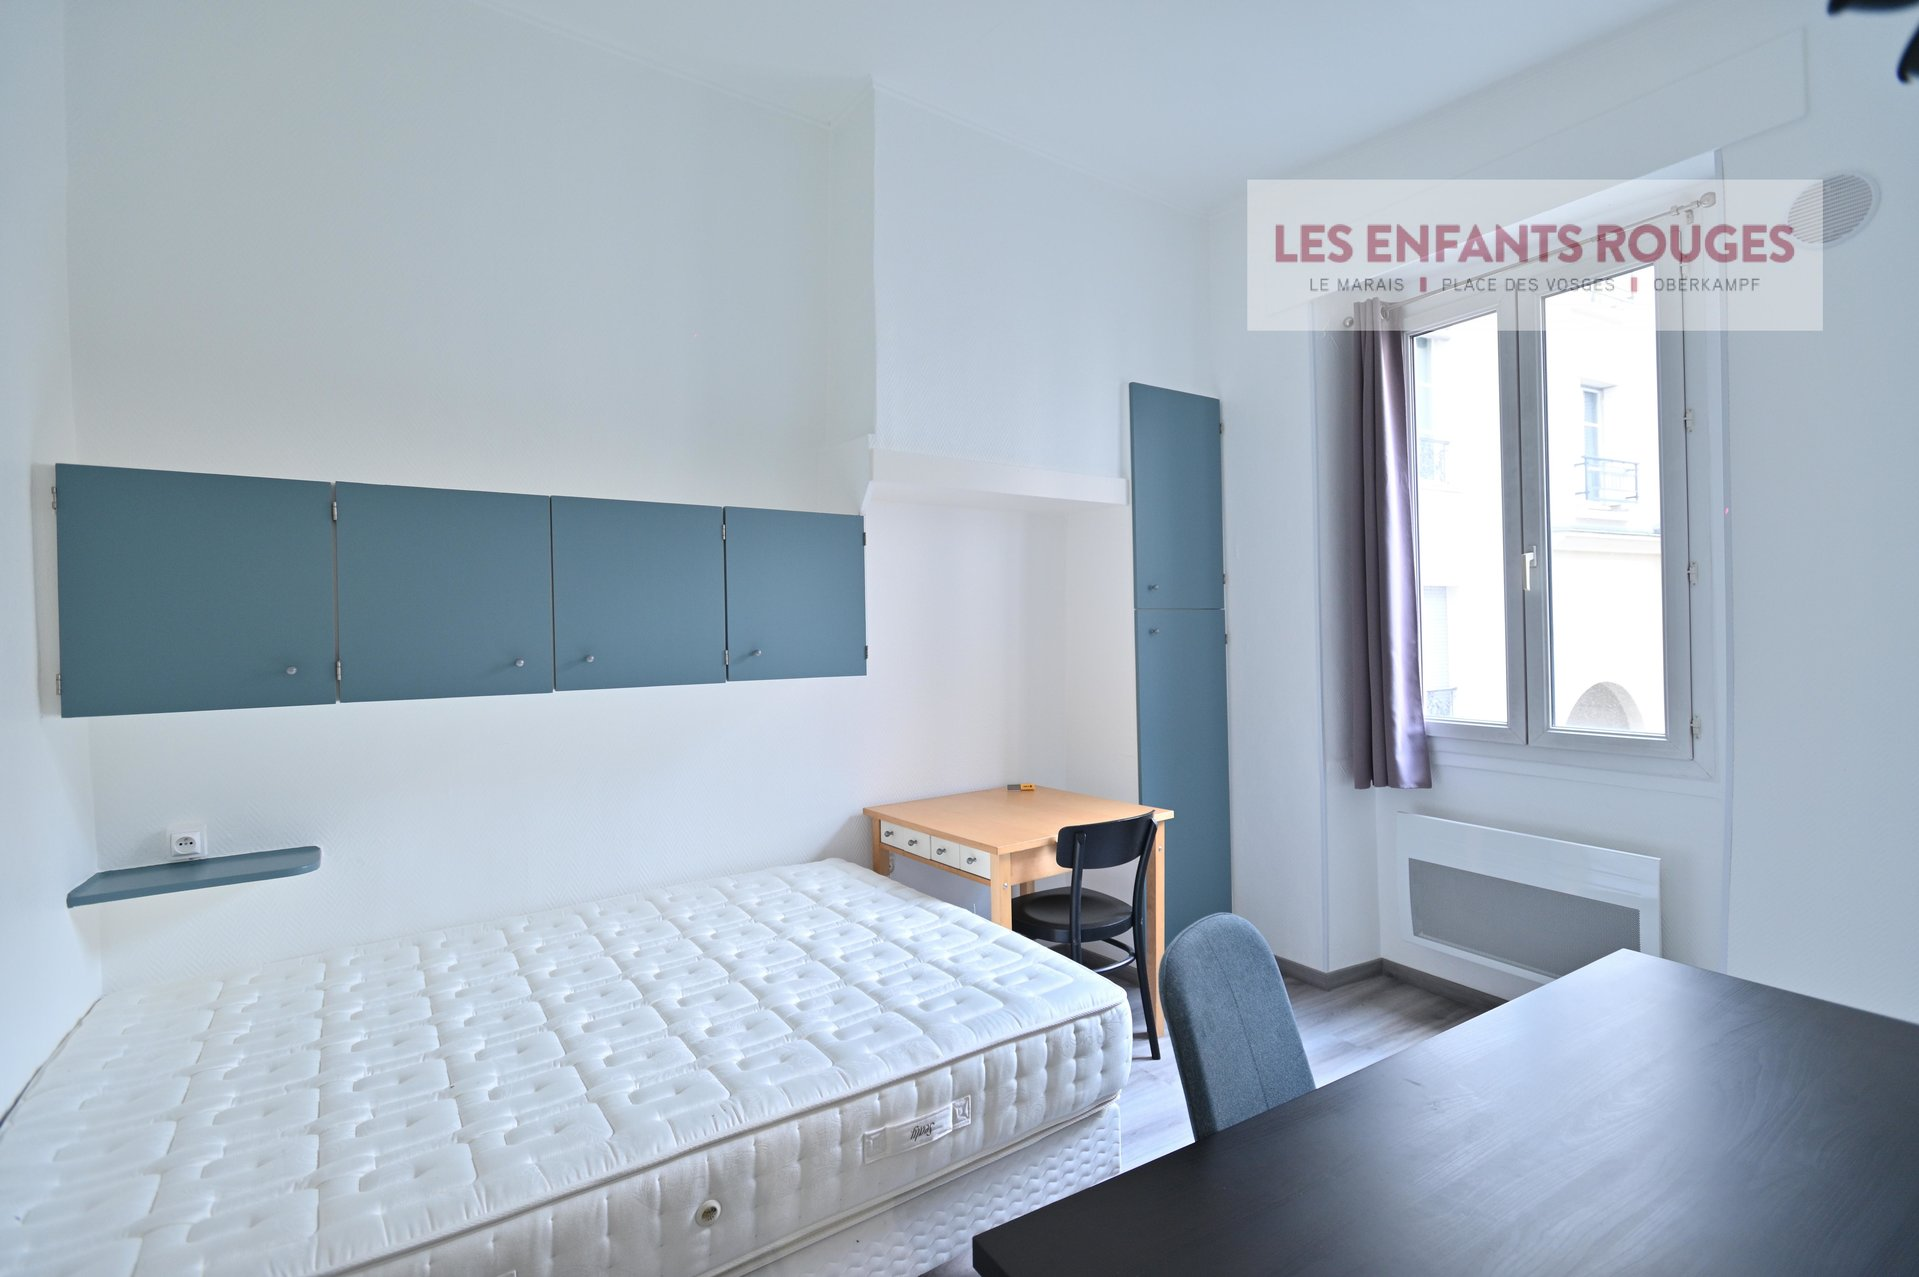 Sale Apartment - Paris 5th (Paris 5ème) Sorbonne